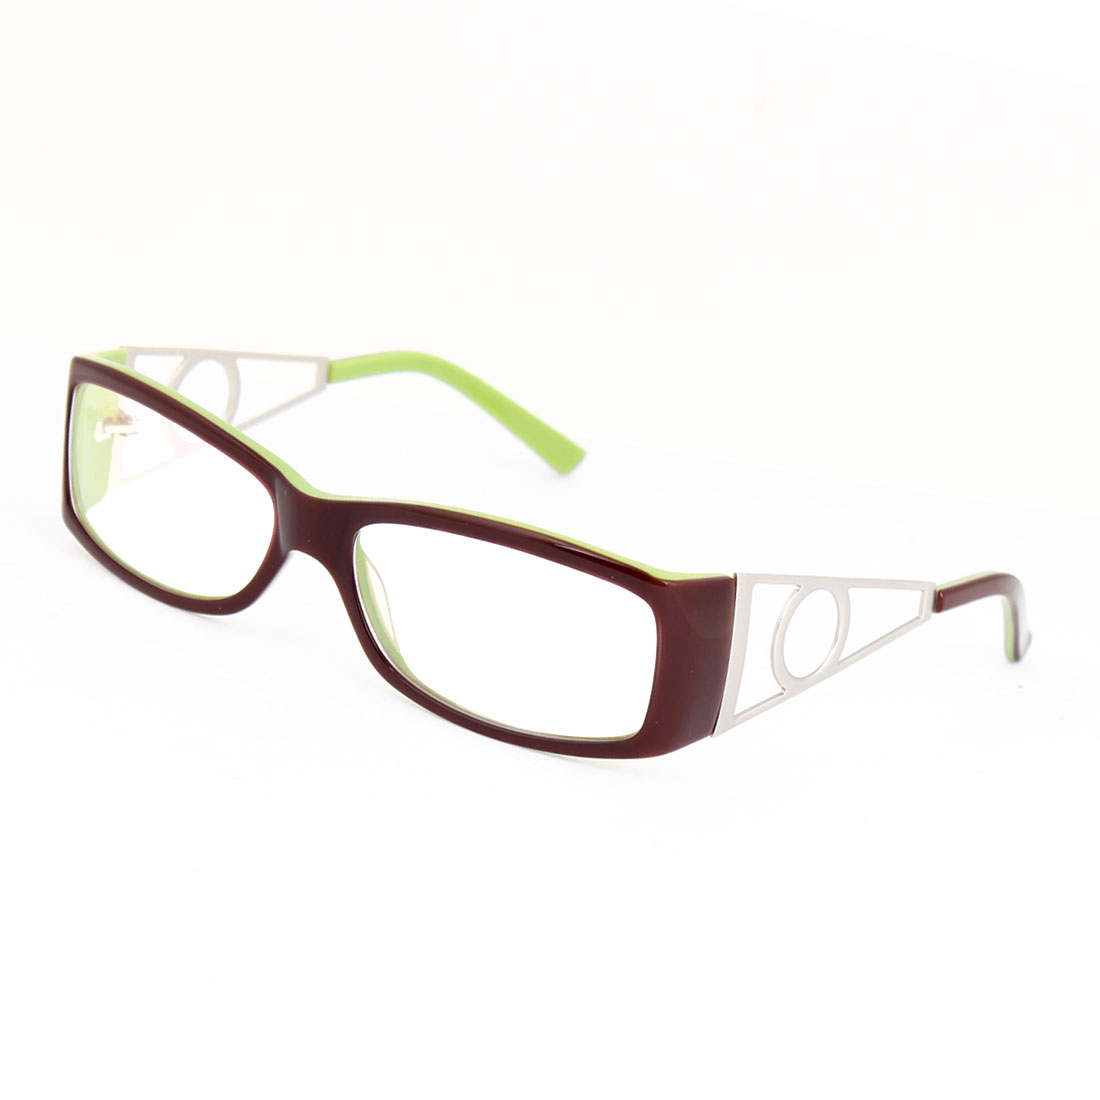 Burgundy Green Plastic Rectangle MC Lens Plano Glasses for Ladies